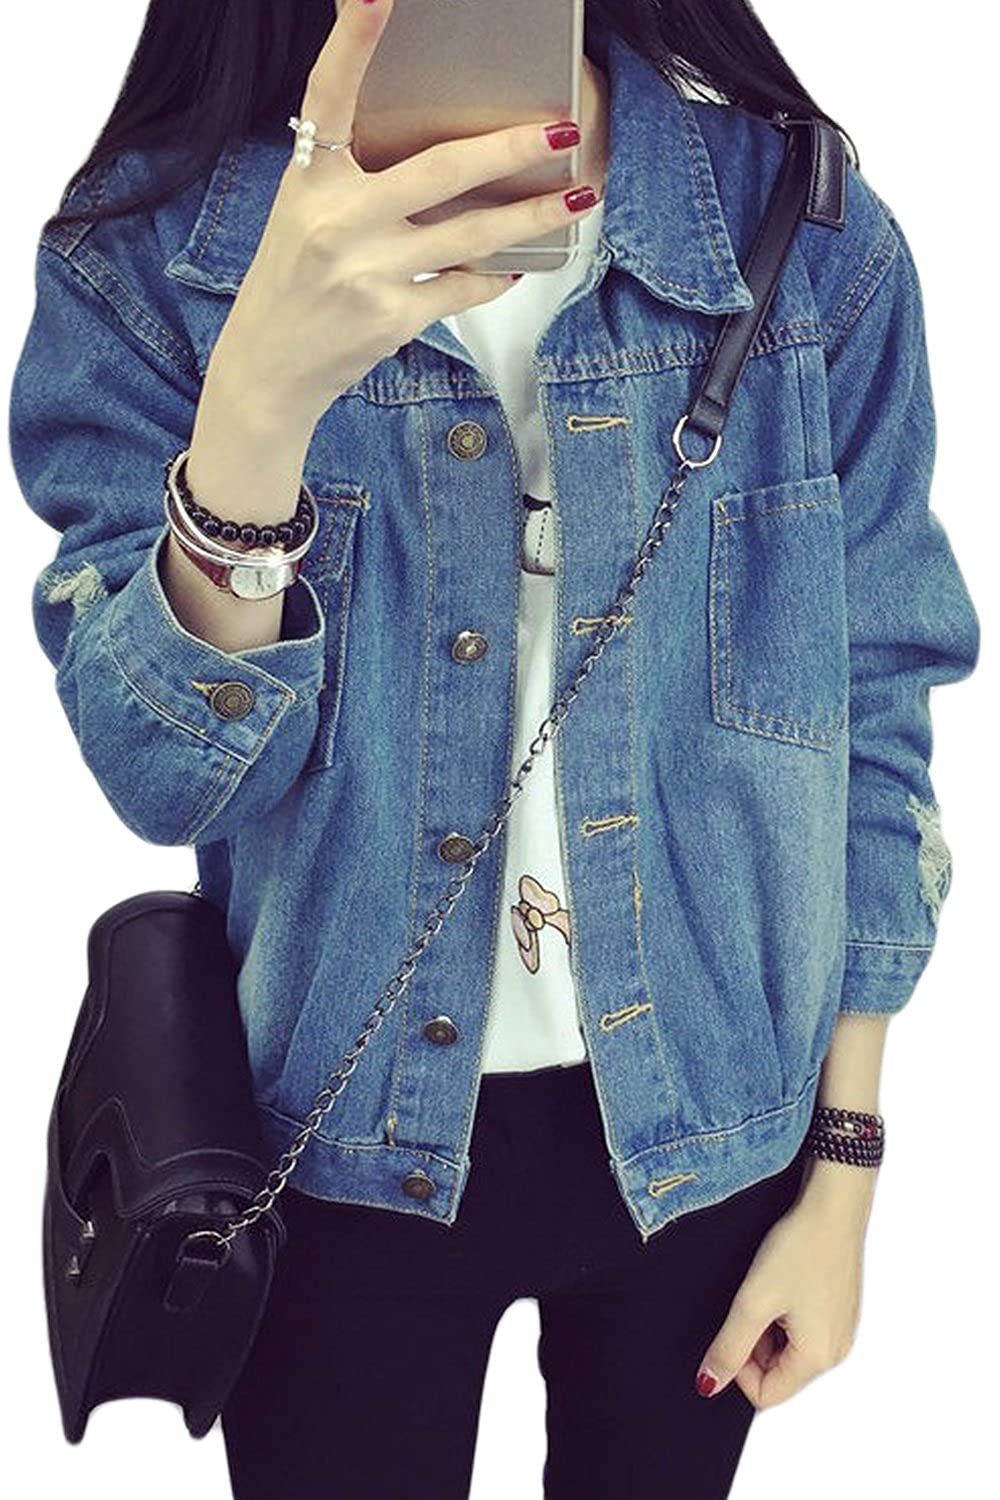 Women's Casual Retro Washed Loose Fit Boyfriend Ripped Hole Denim Jackets CAAFSMY67